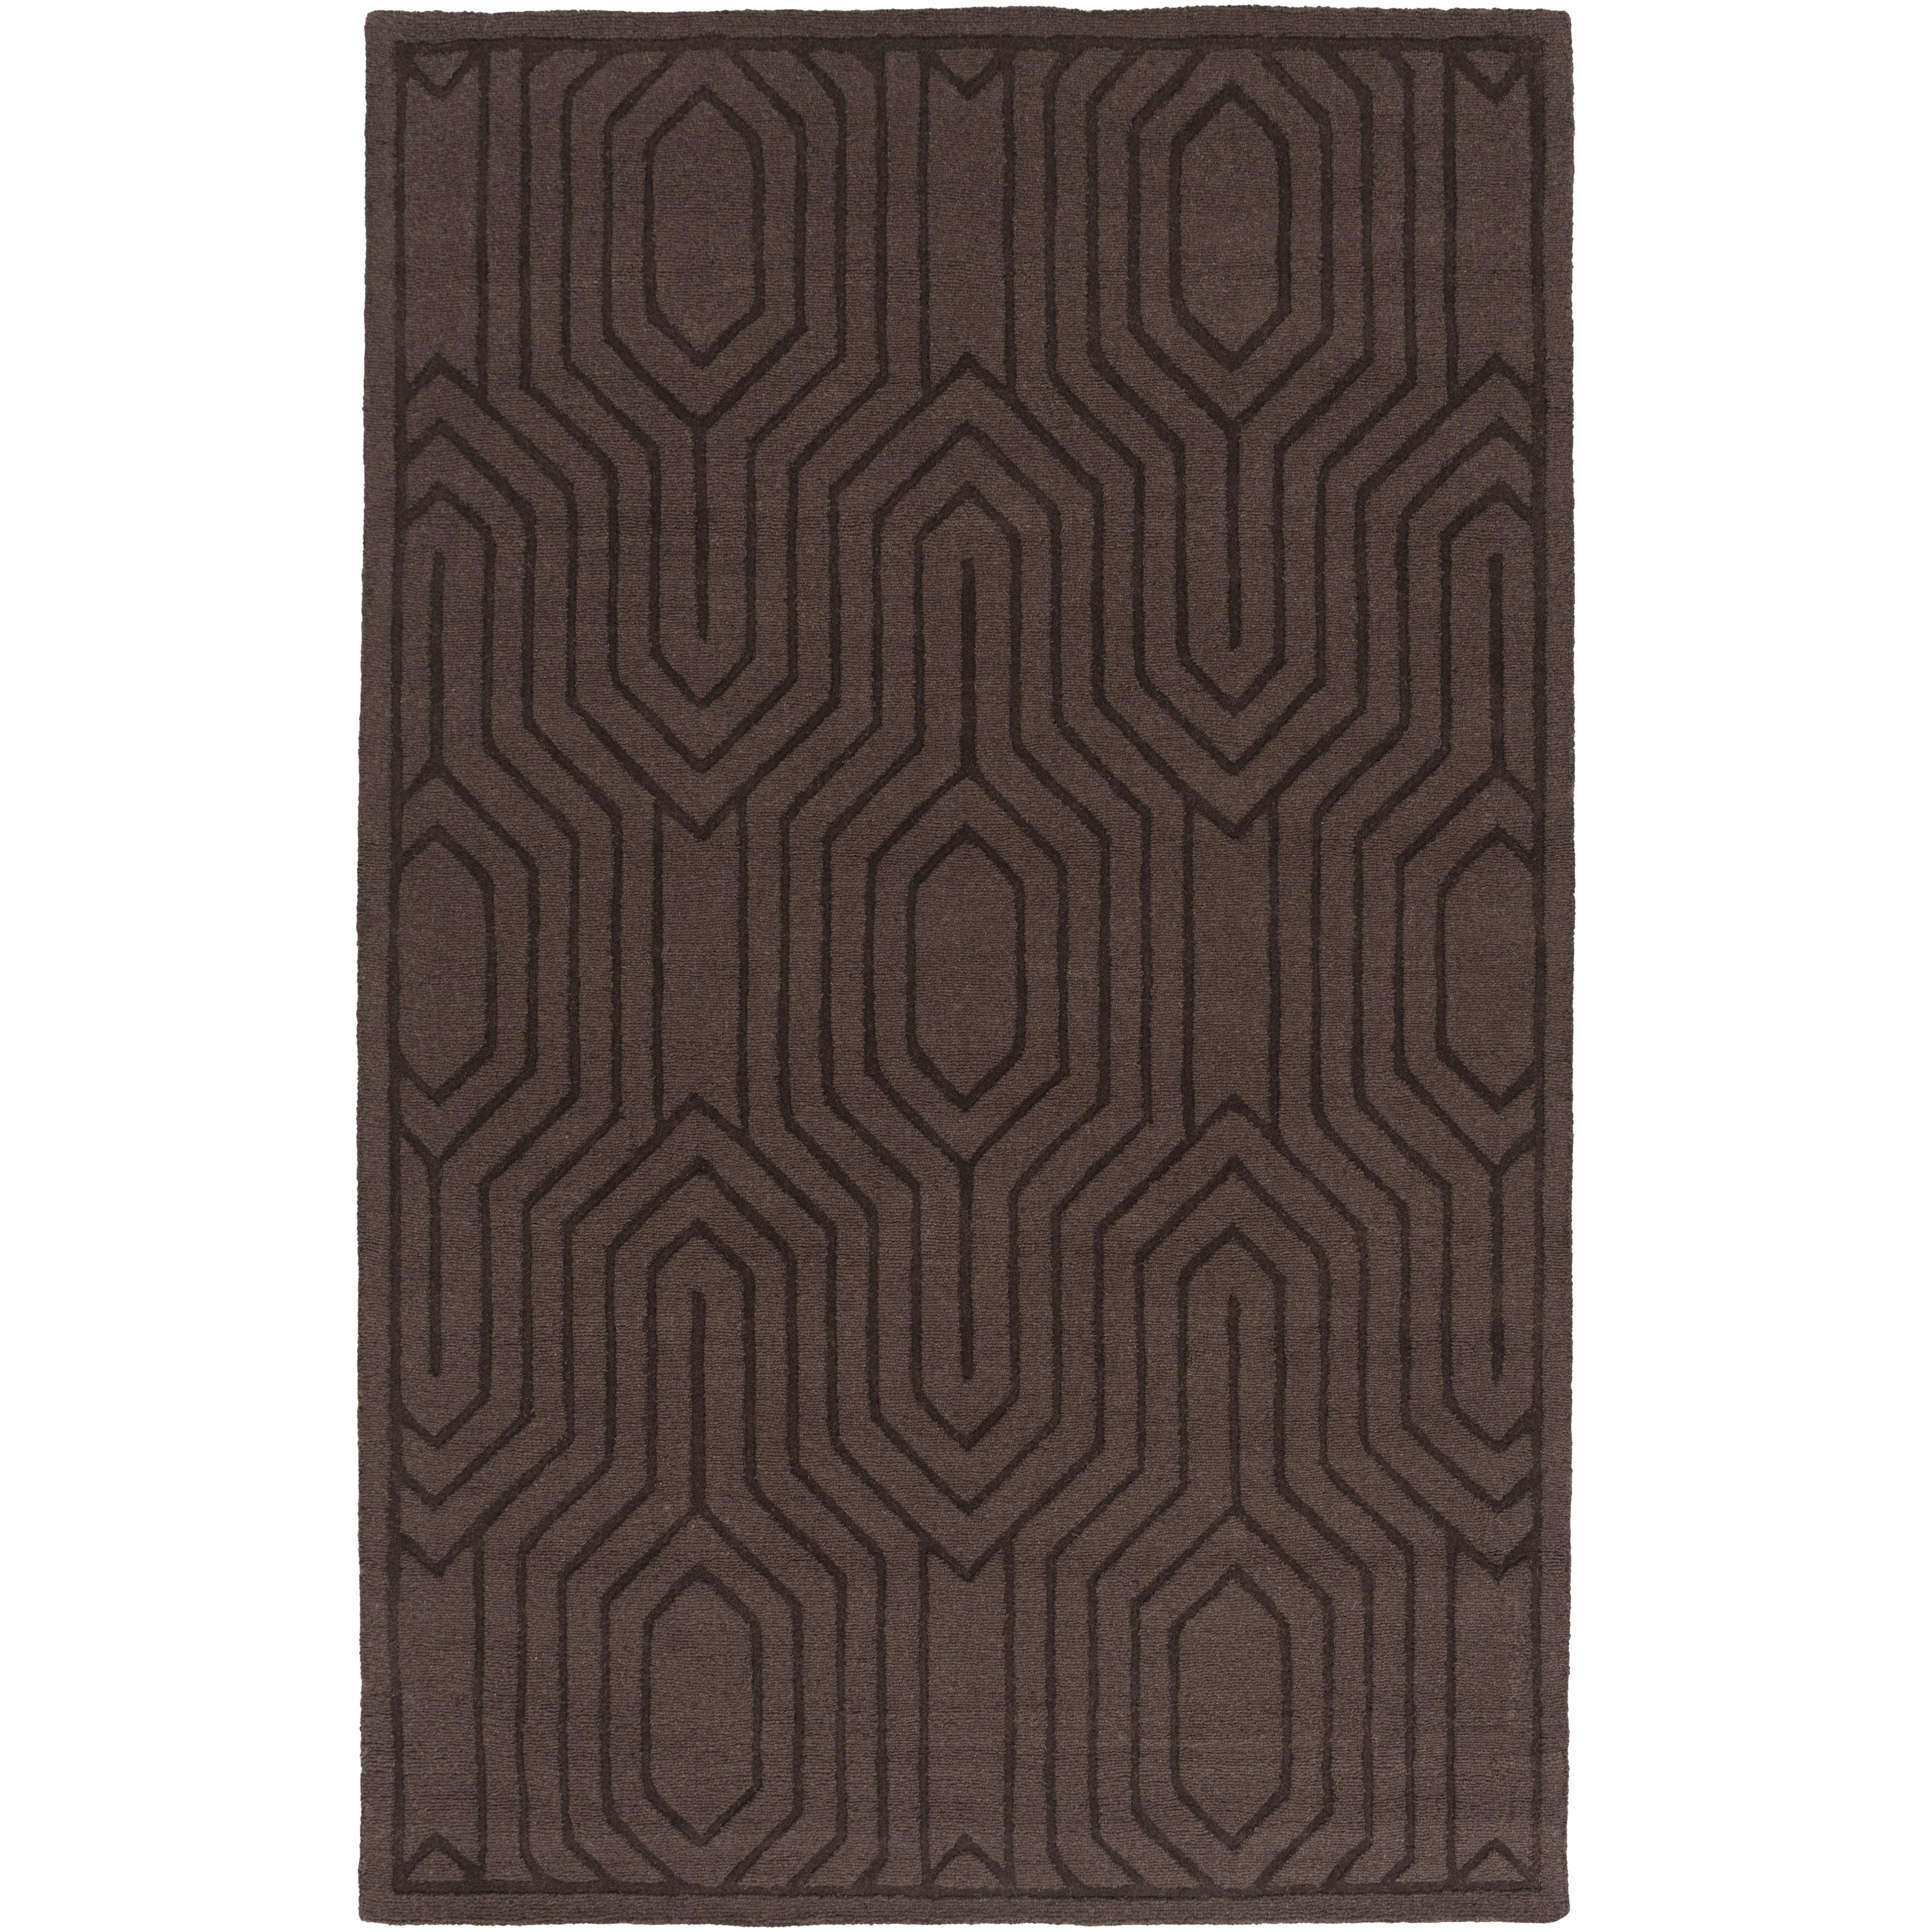 Surya Rugs Mystique 5' x 8' - Item Number: M5367-58